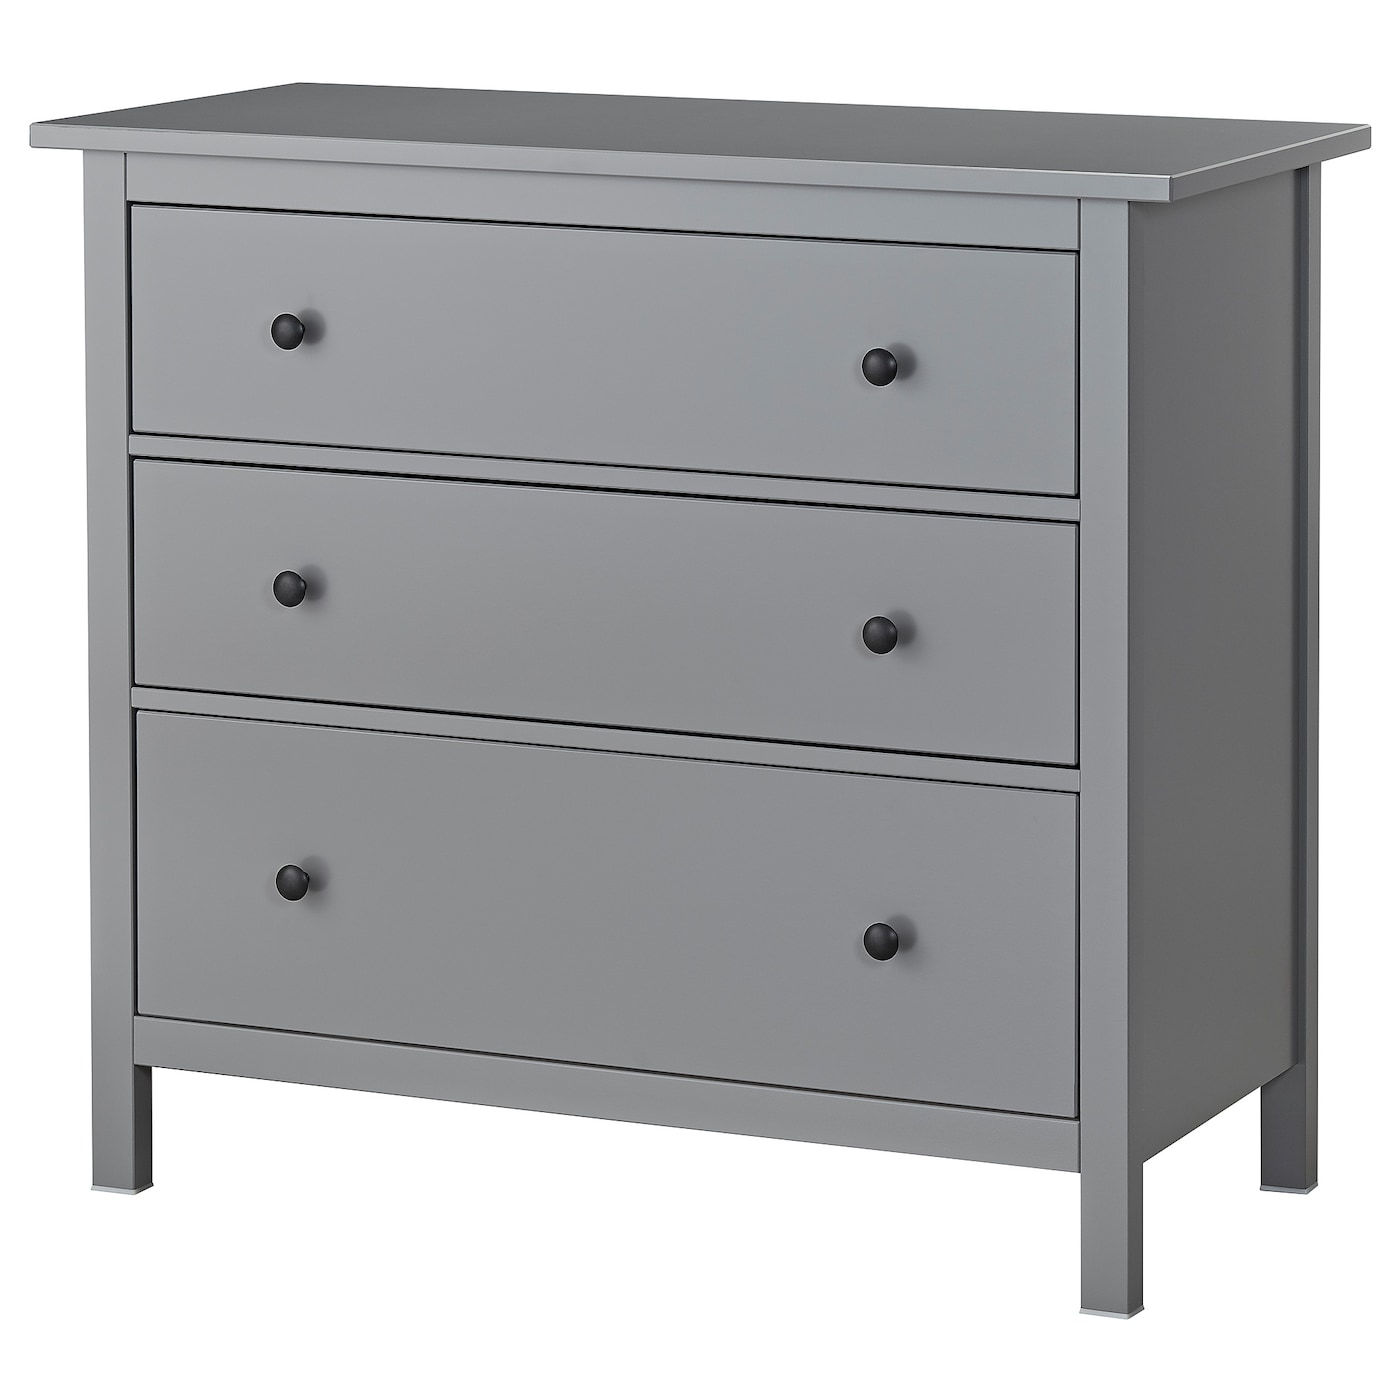 hemnes chest of 3 drawers grey 108 x 96 cm ikea. Black Bedroom Furniture Sets. Home Design Ideas